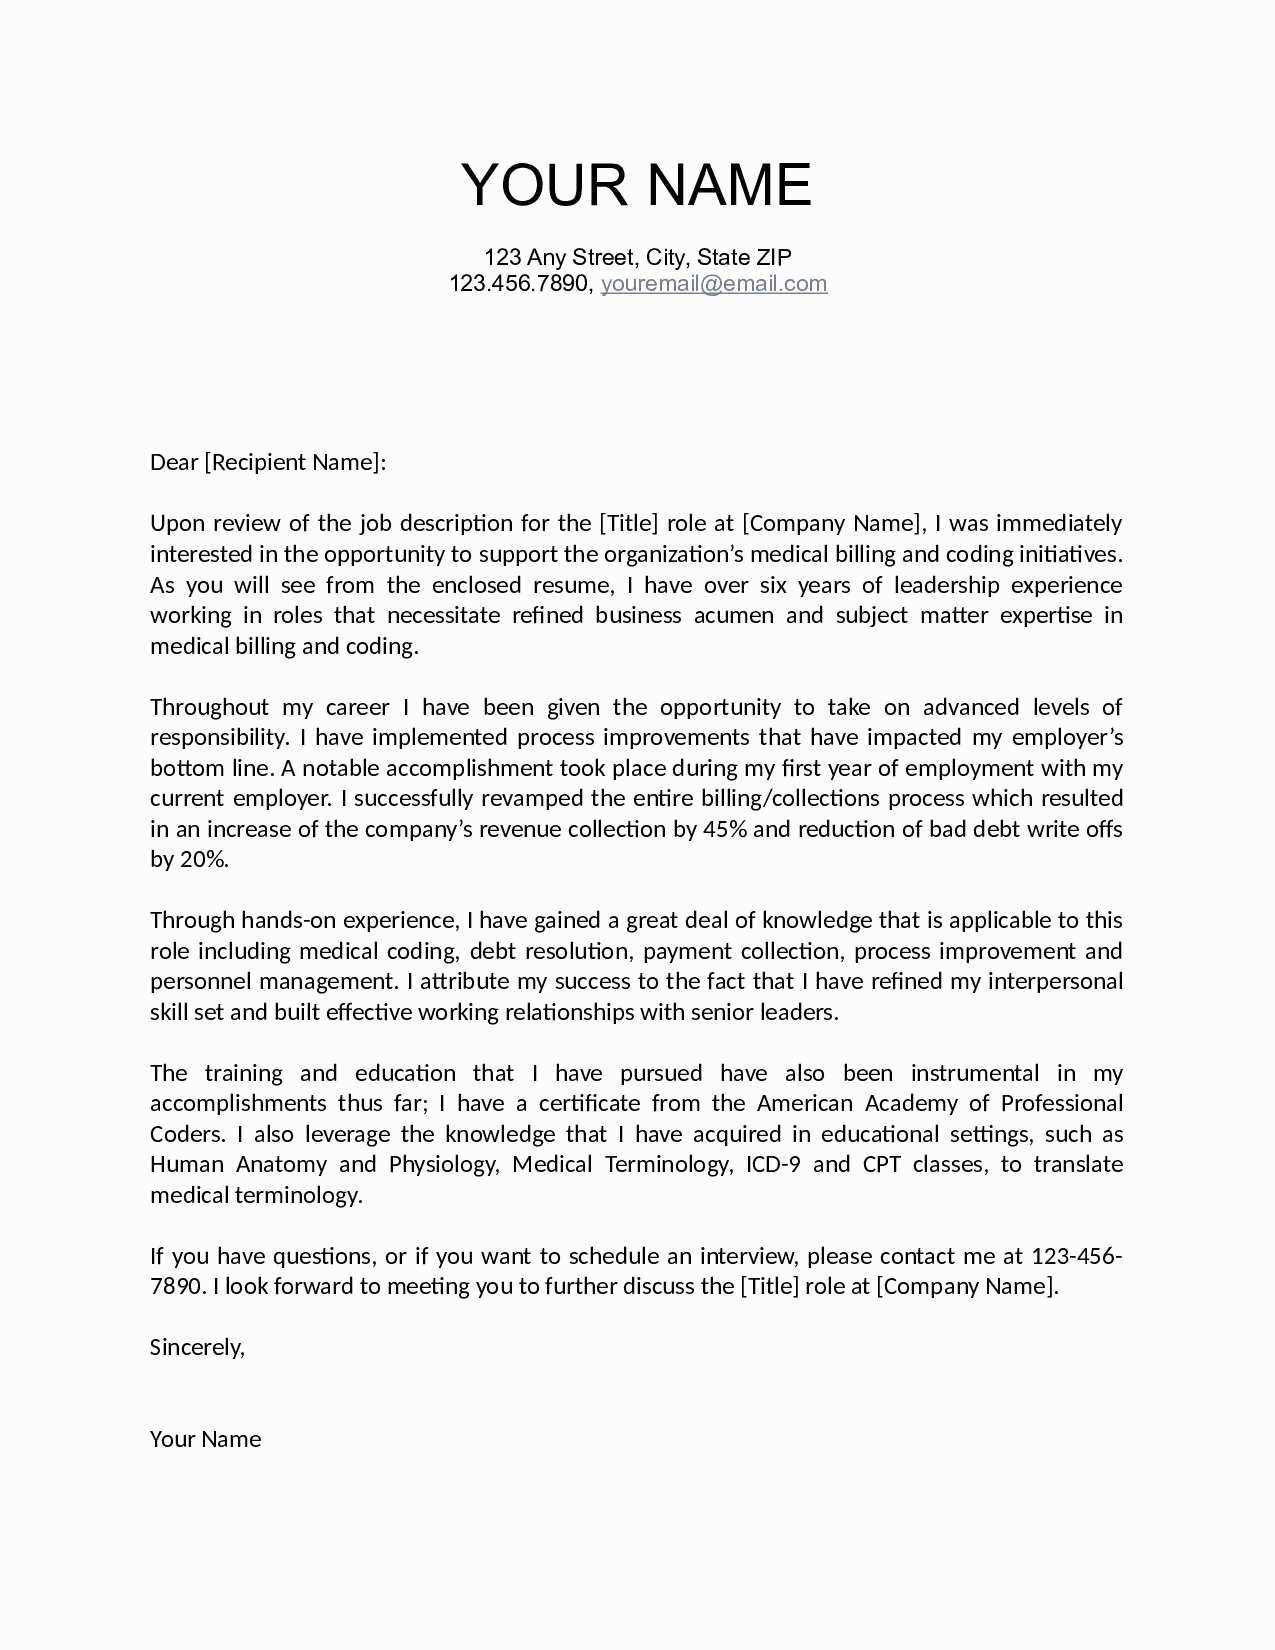 Letter to Hoa Template - Letter Resolution Template